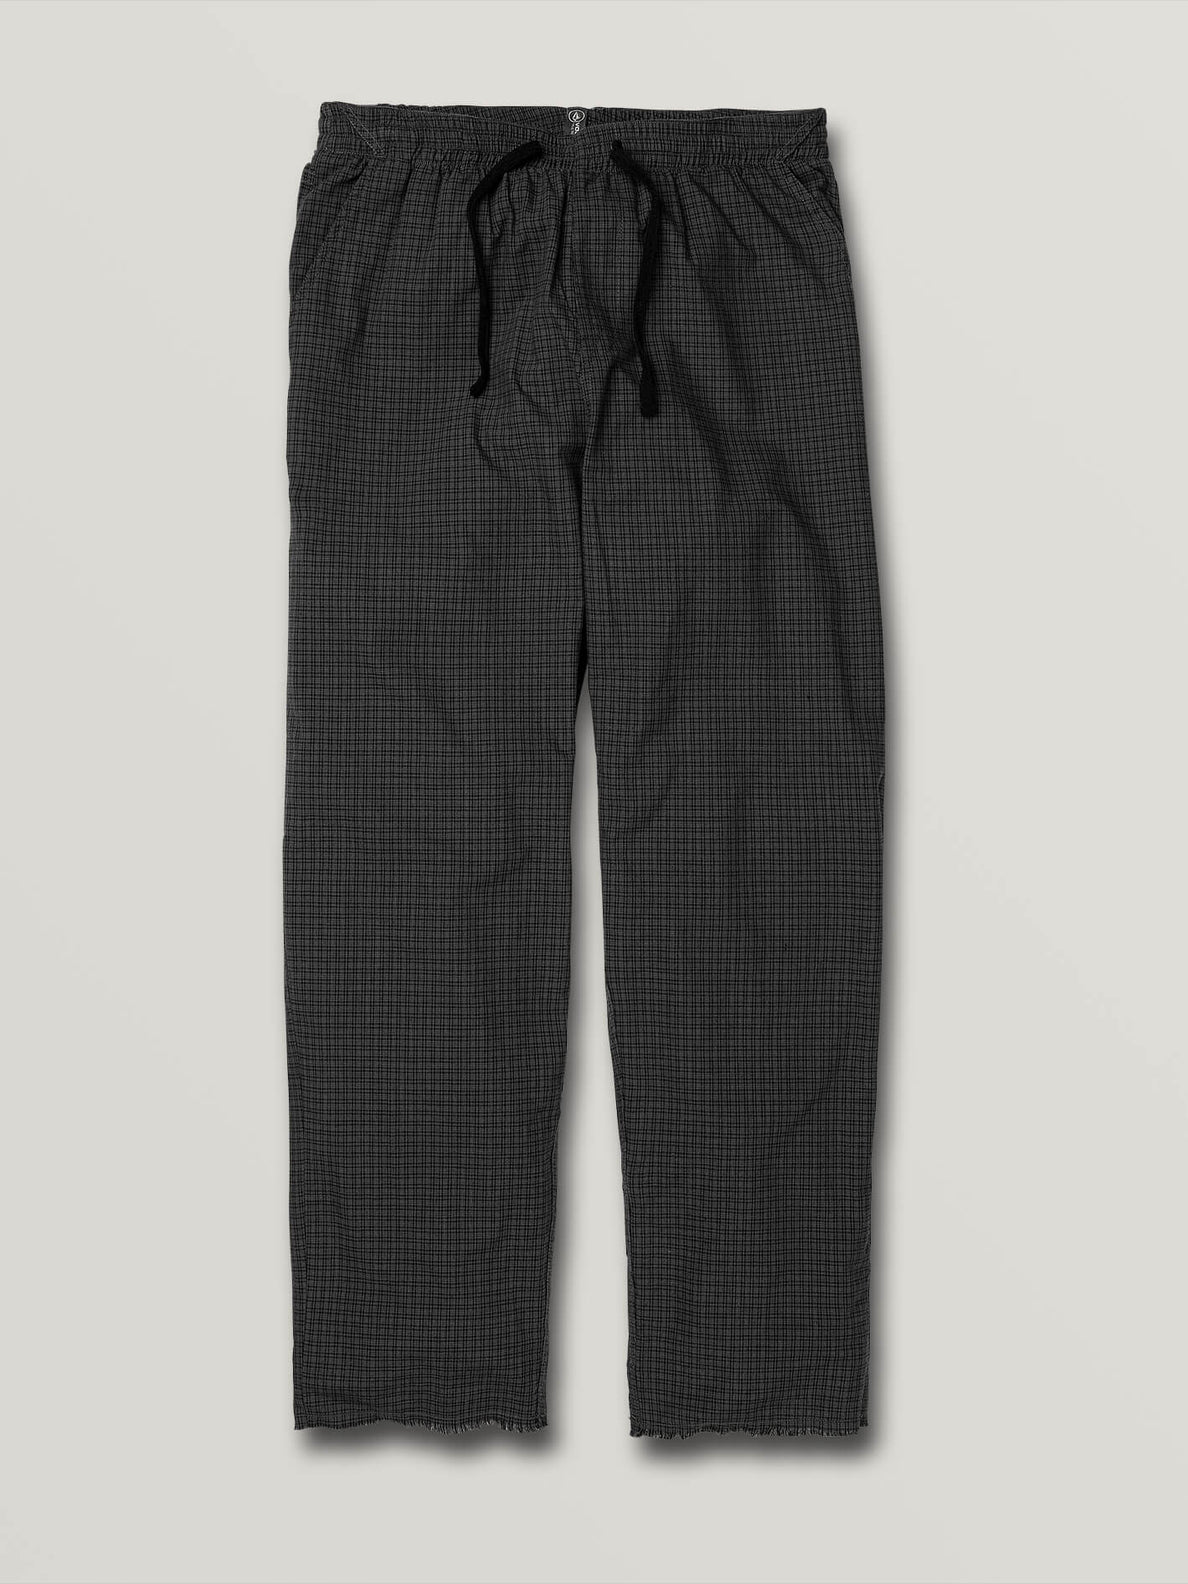 LOOSIE THRIFTER PANT (A1212000_DCR) [F]